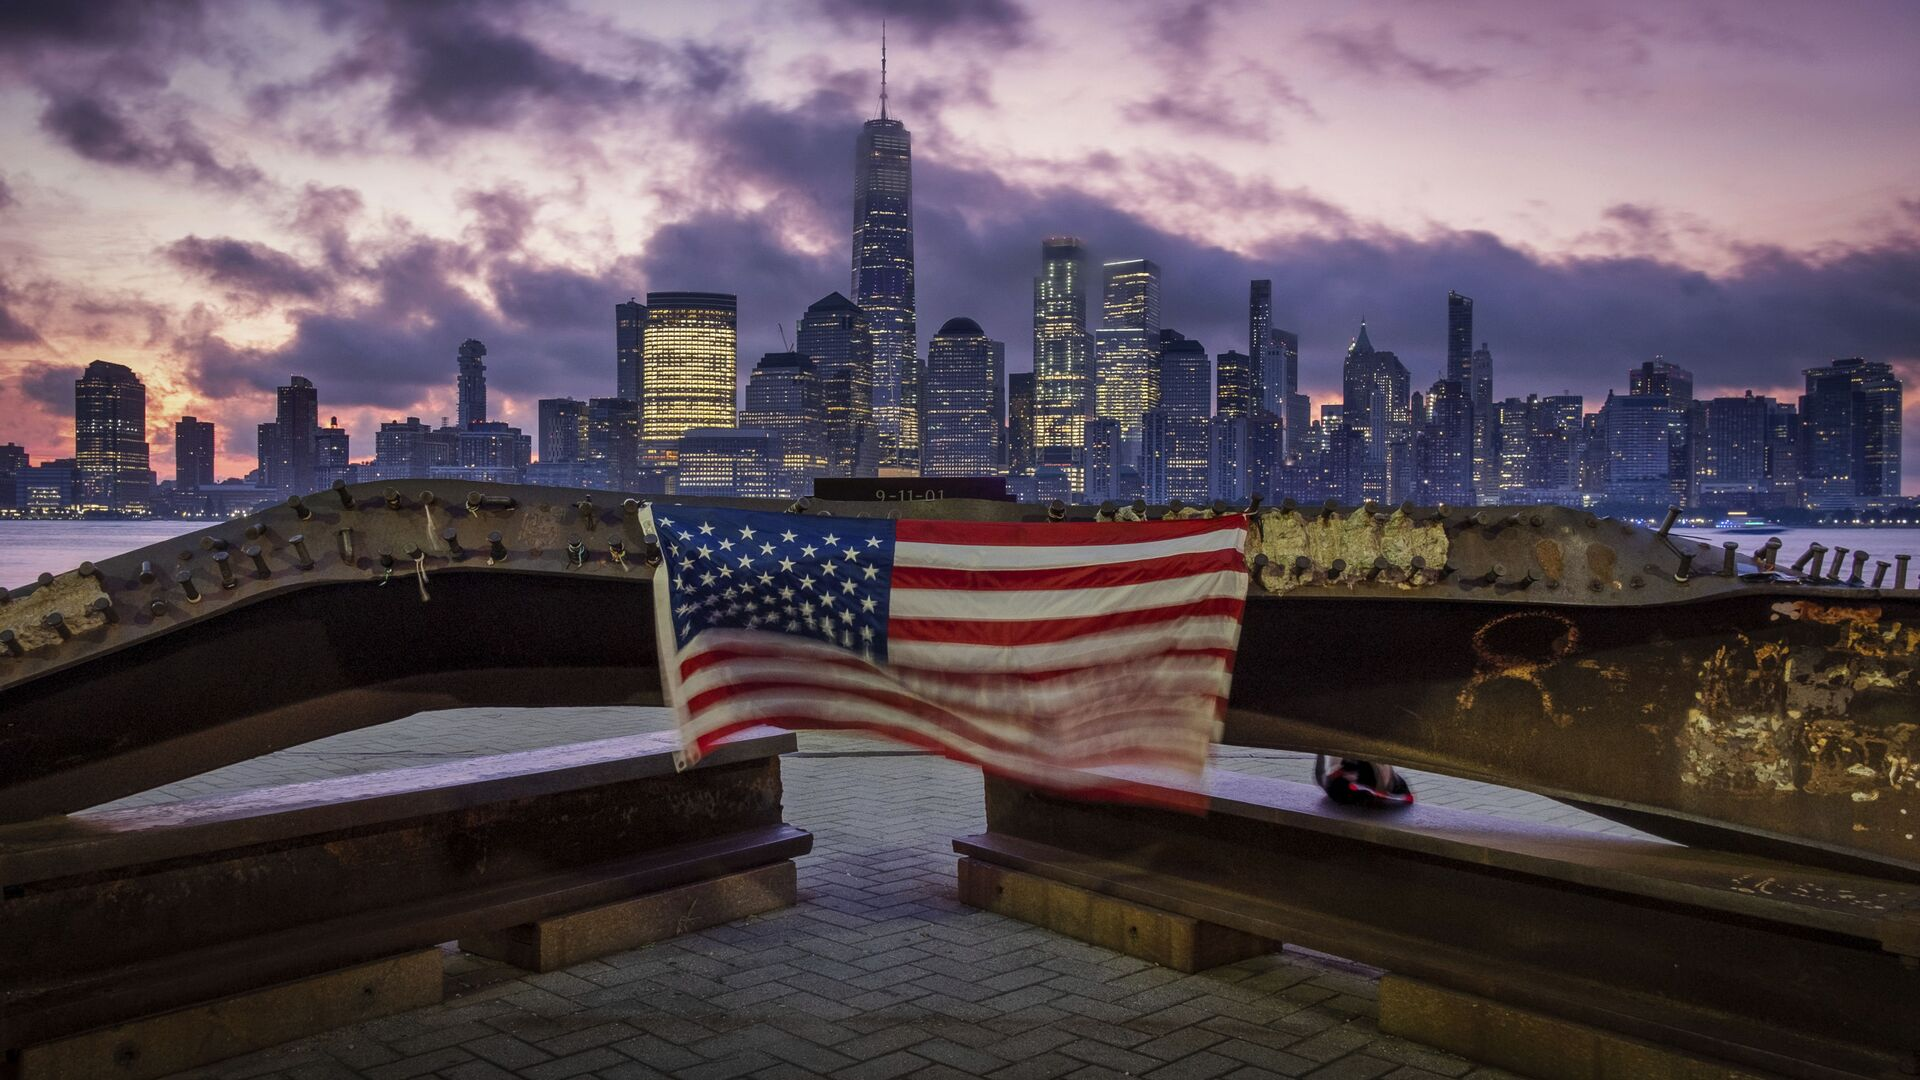 A US flag hanging from a steel girder, damaged in the 11 September 2001 attacks on the World Trade Center, blows in the breeze at a memorial in Jersey City, New Jersey on 11 September 2019. - Sputnik International, 1920, 06.09.2021